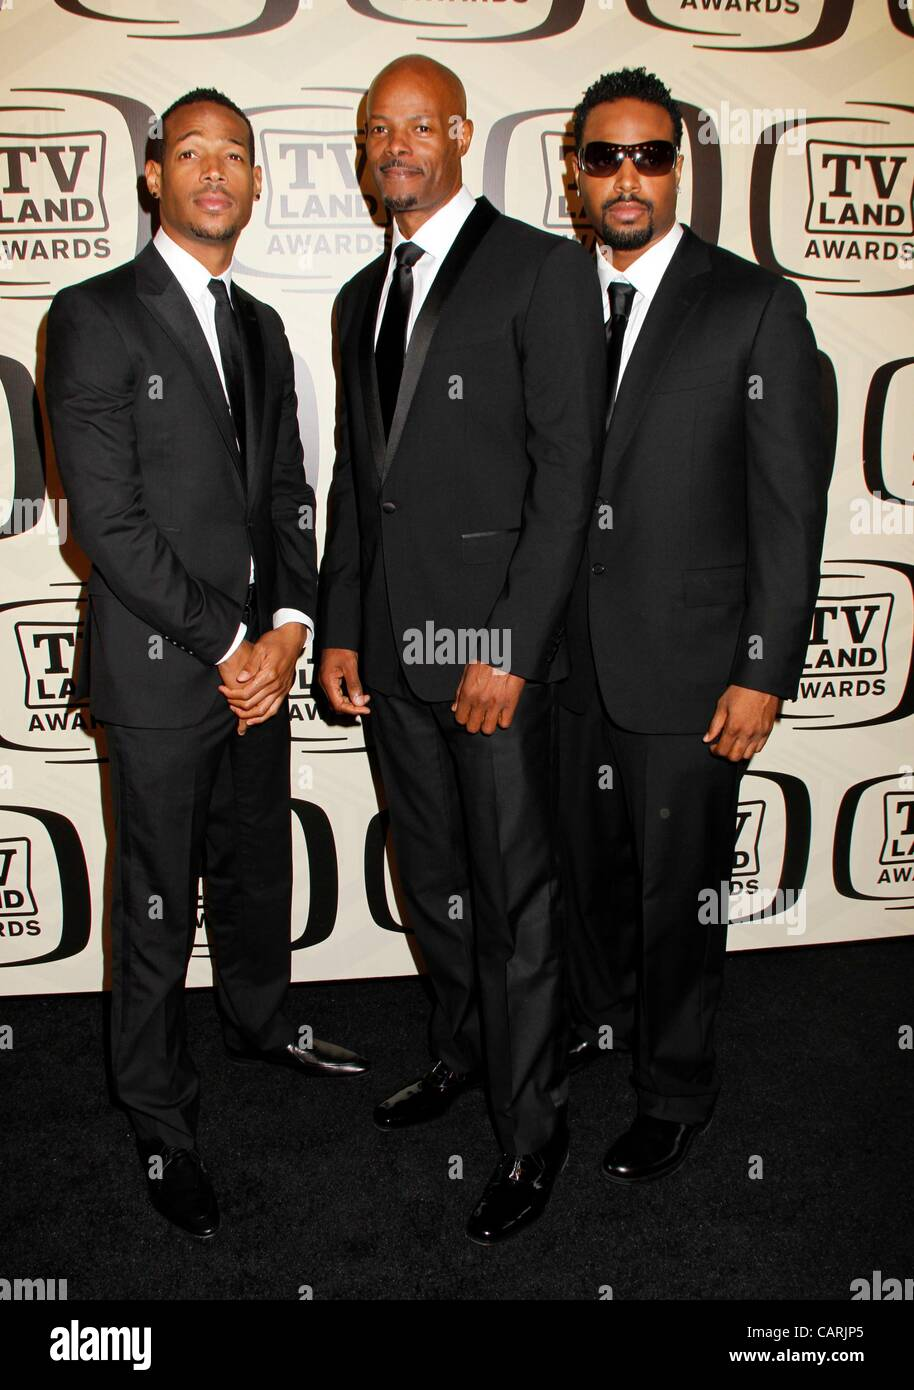 wayans brothers at arrivals for tv land awards 10th anniversary